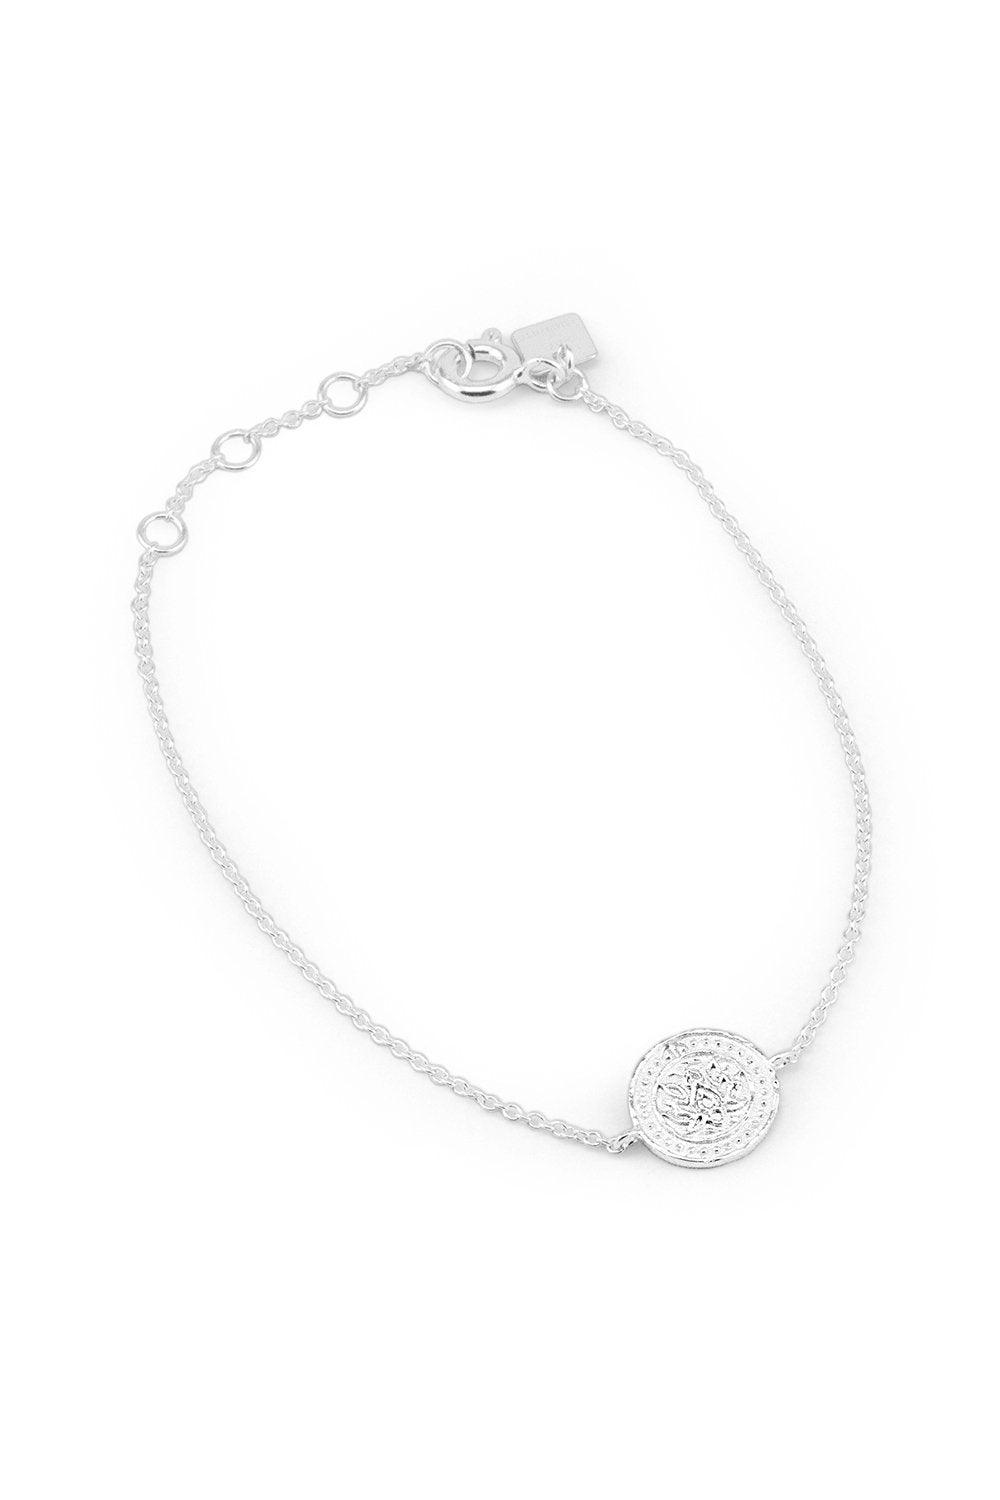 BY CHARLOTTE LOTUS BRACELET SILVER PLATED